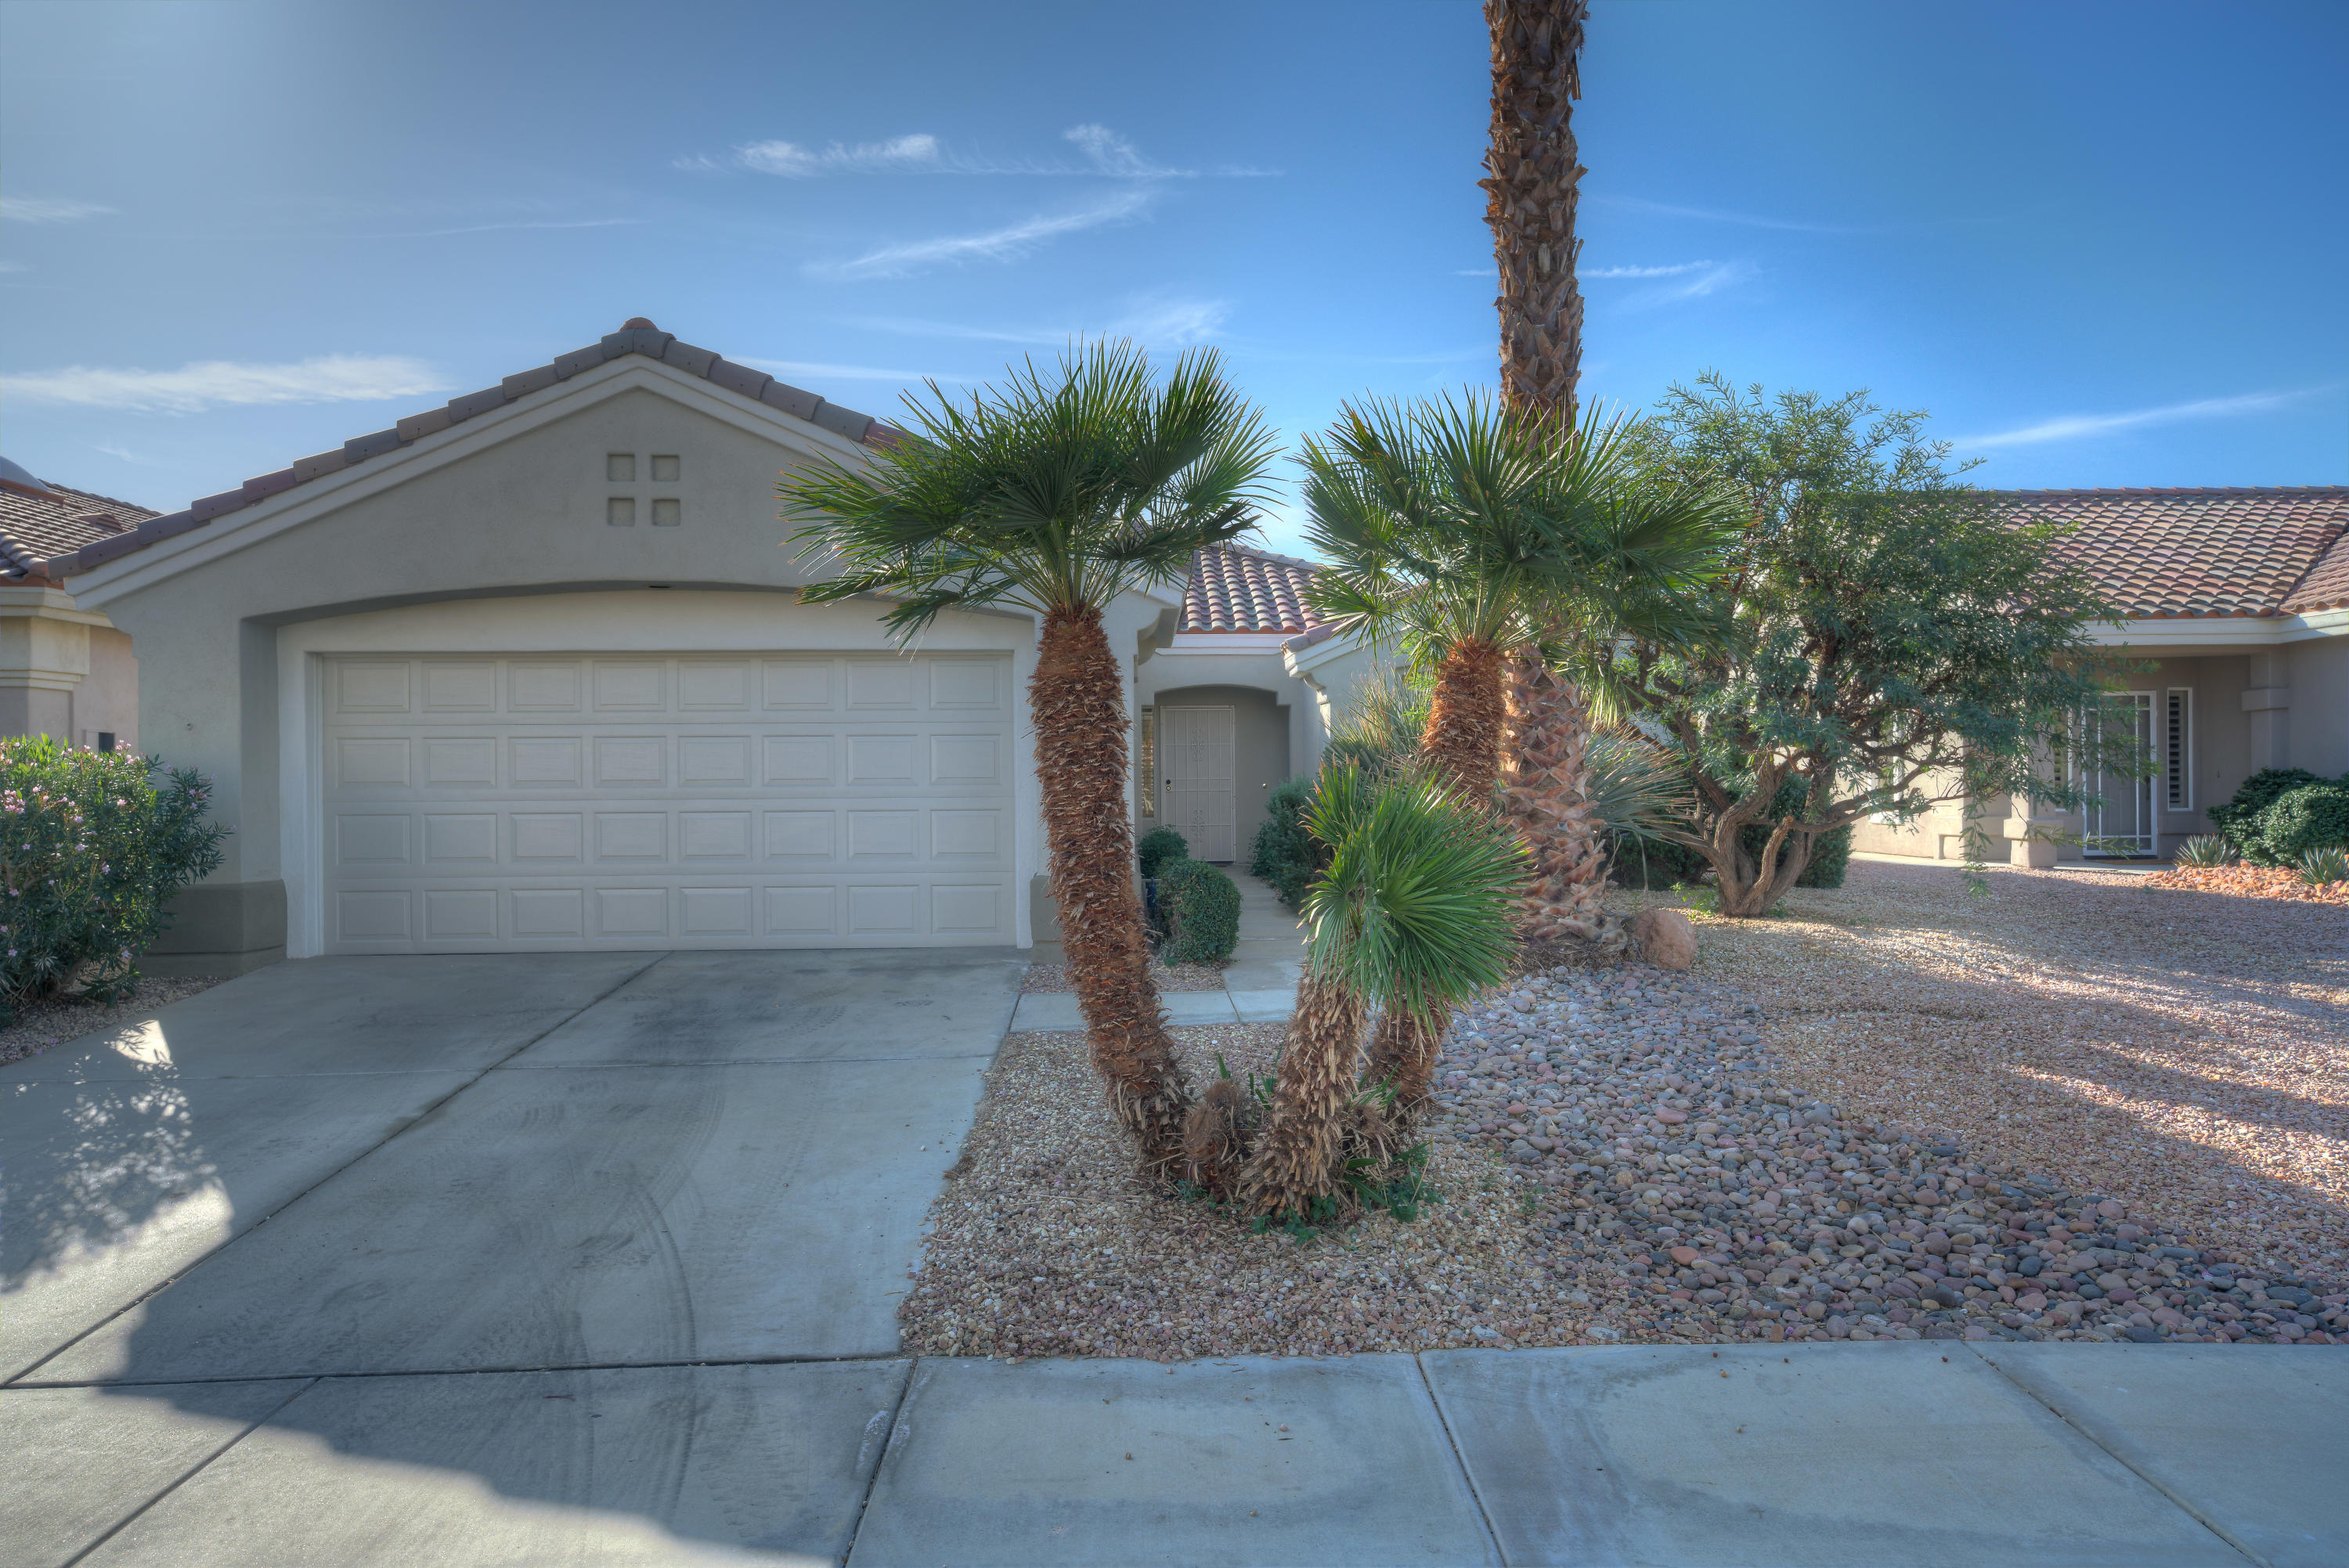 Photo of 78401 Desert Willow Drive, Palm Desert, CA 92211